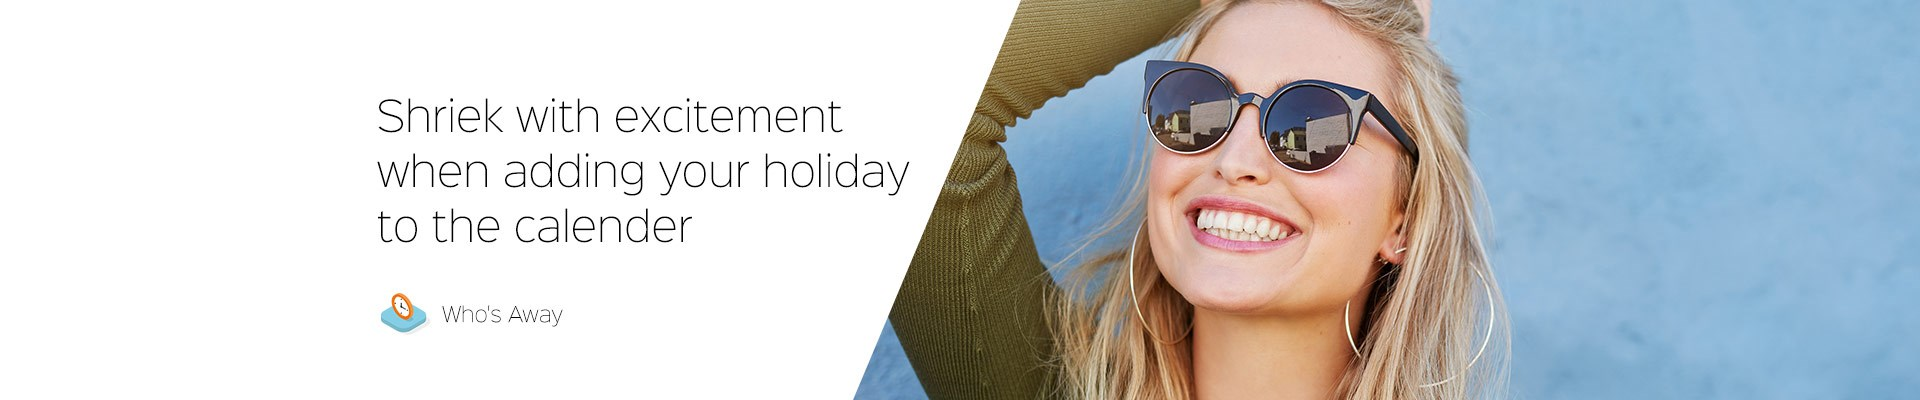 People Care Holiday Management from WORKPLACEone